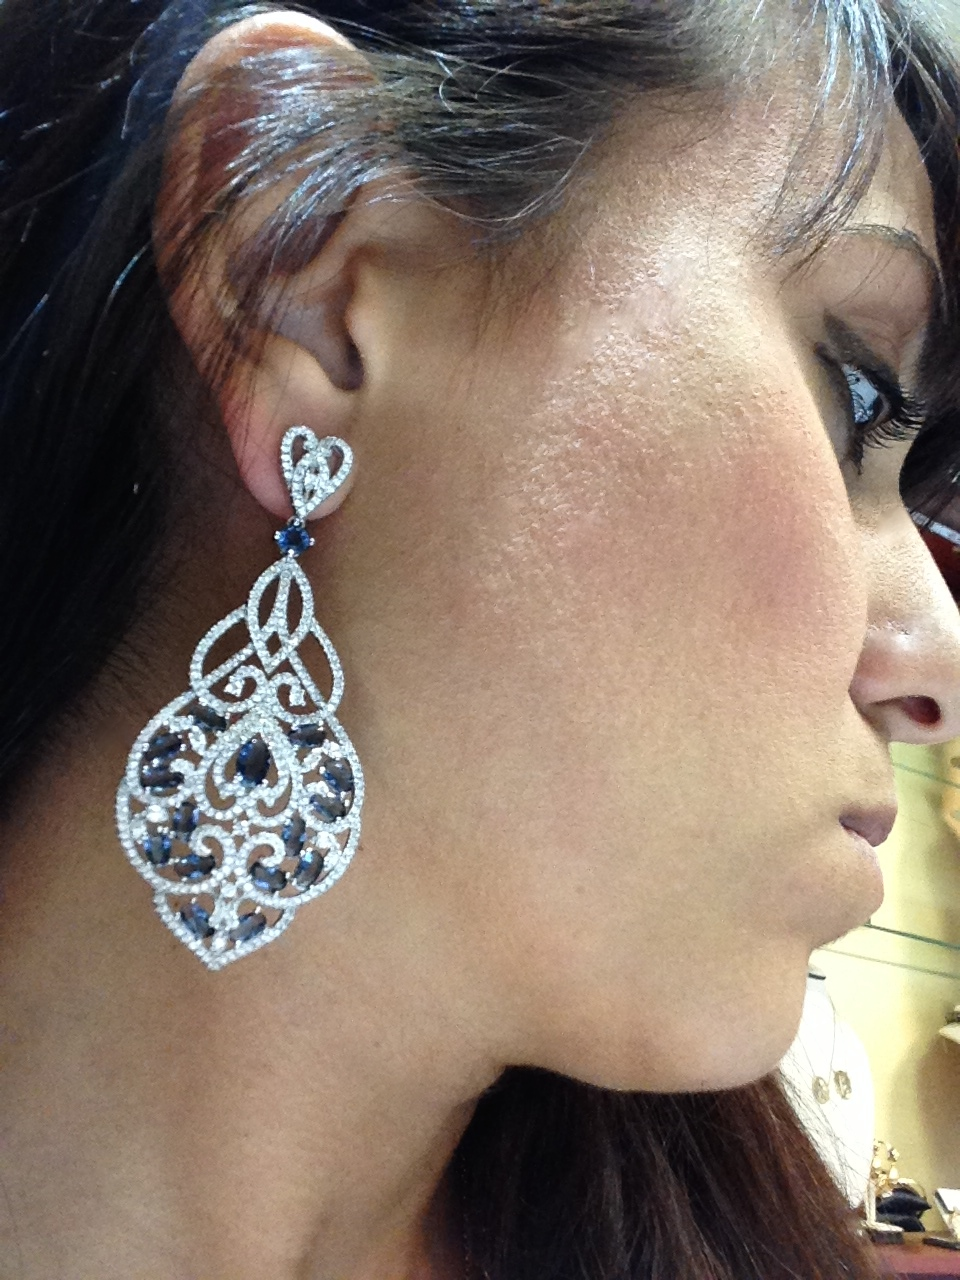 Amazingly Beautiful Diamond Like Chandelier Earrings Hand Crafted In Solid 925 Sterling Silver With White Gold Overlay Containing Simulated